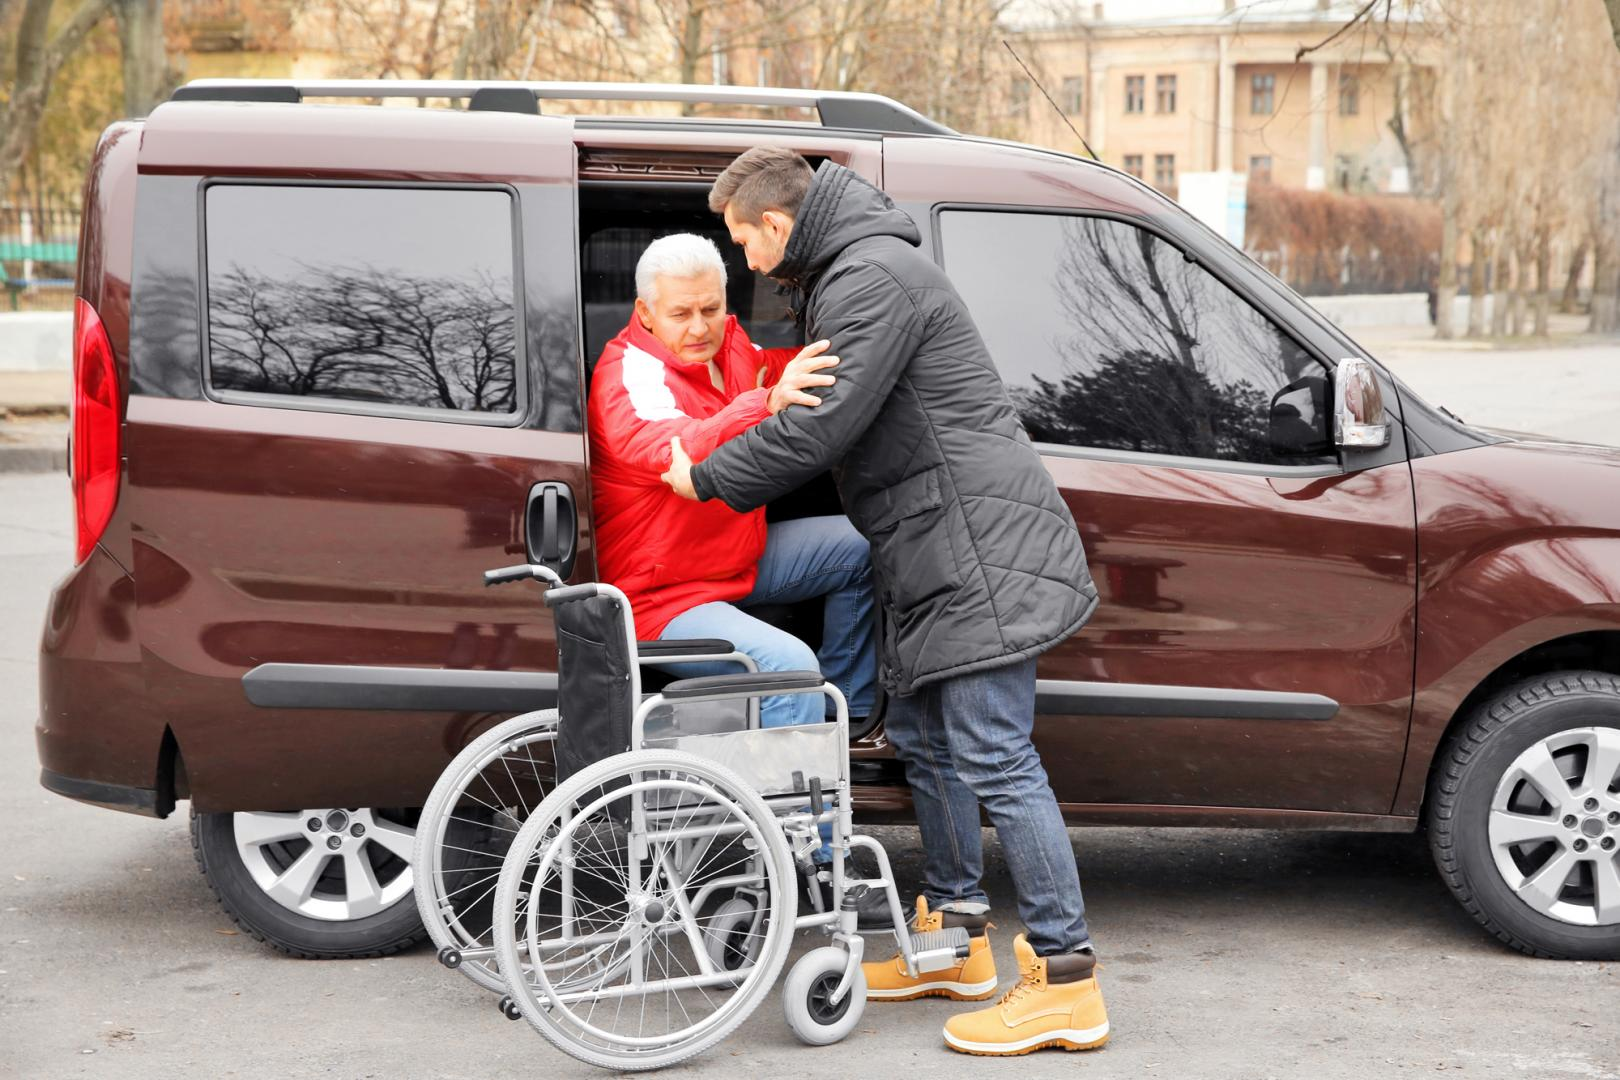 Build an App Like Uber for Handicapped People